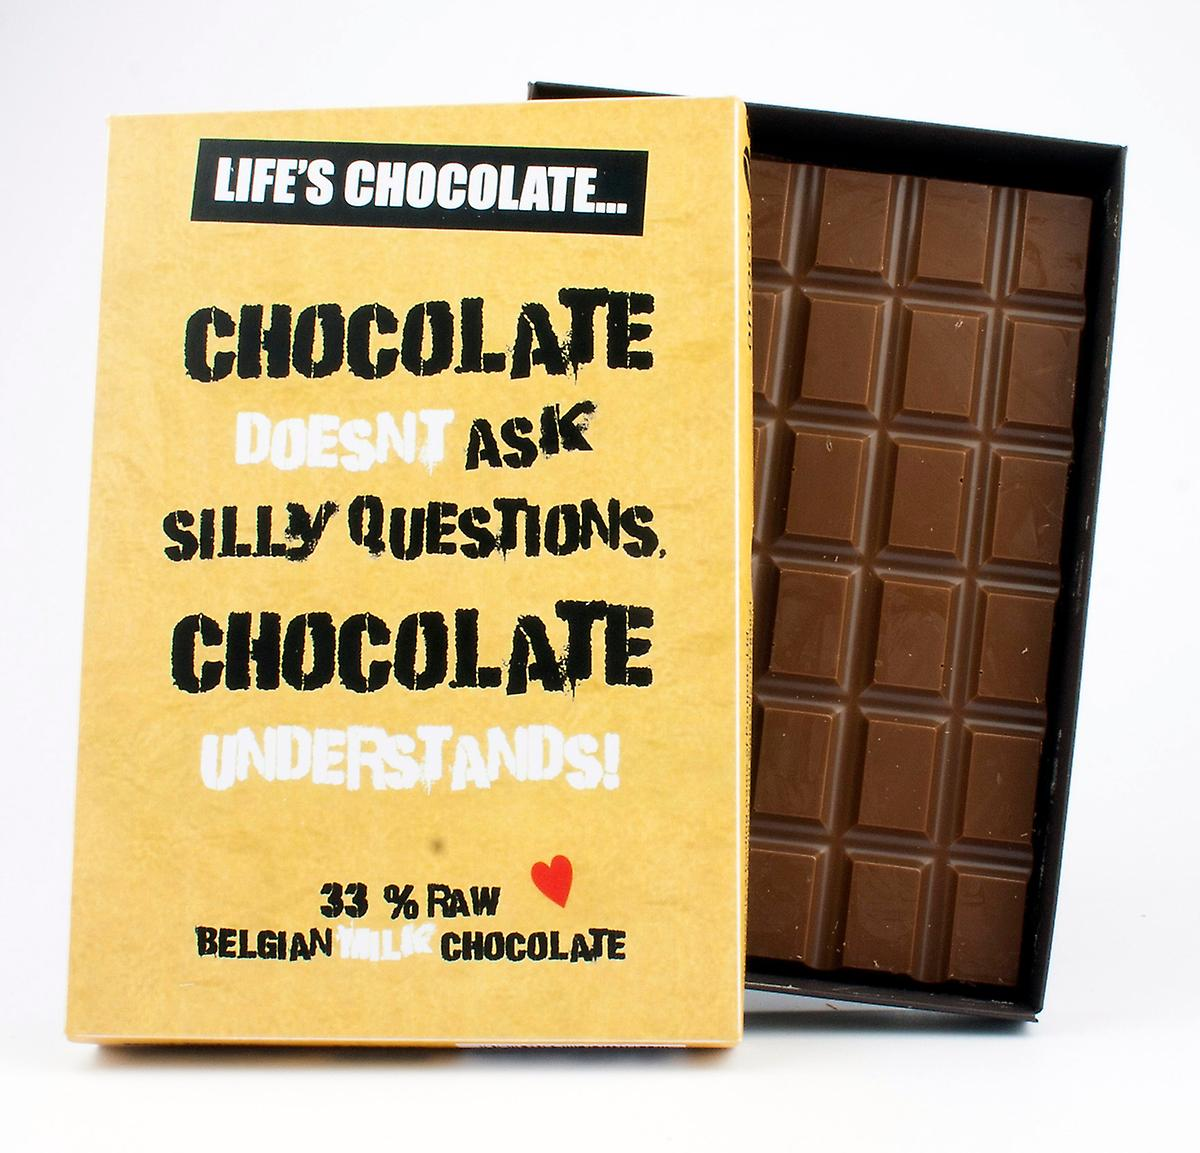 Funny Boxed Chocolate Quote Gift For Men Women Best Friend Greeting Card for Him or Her LC120